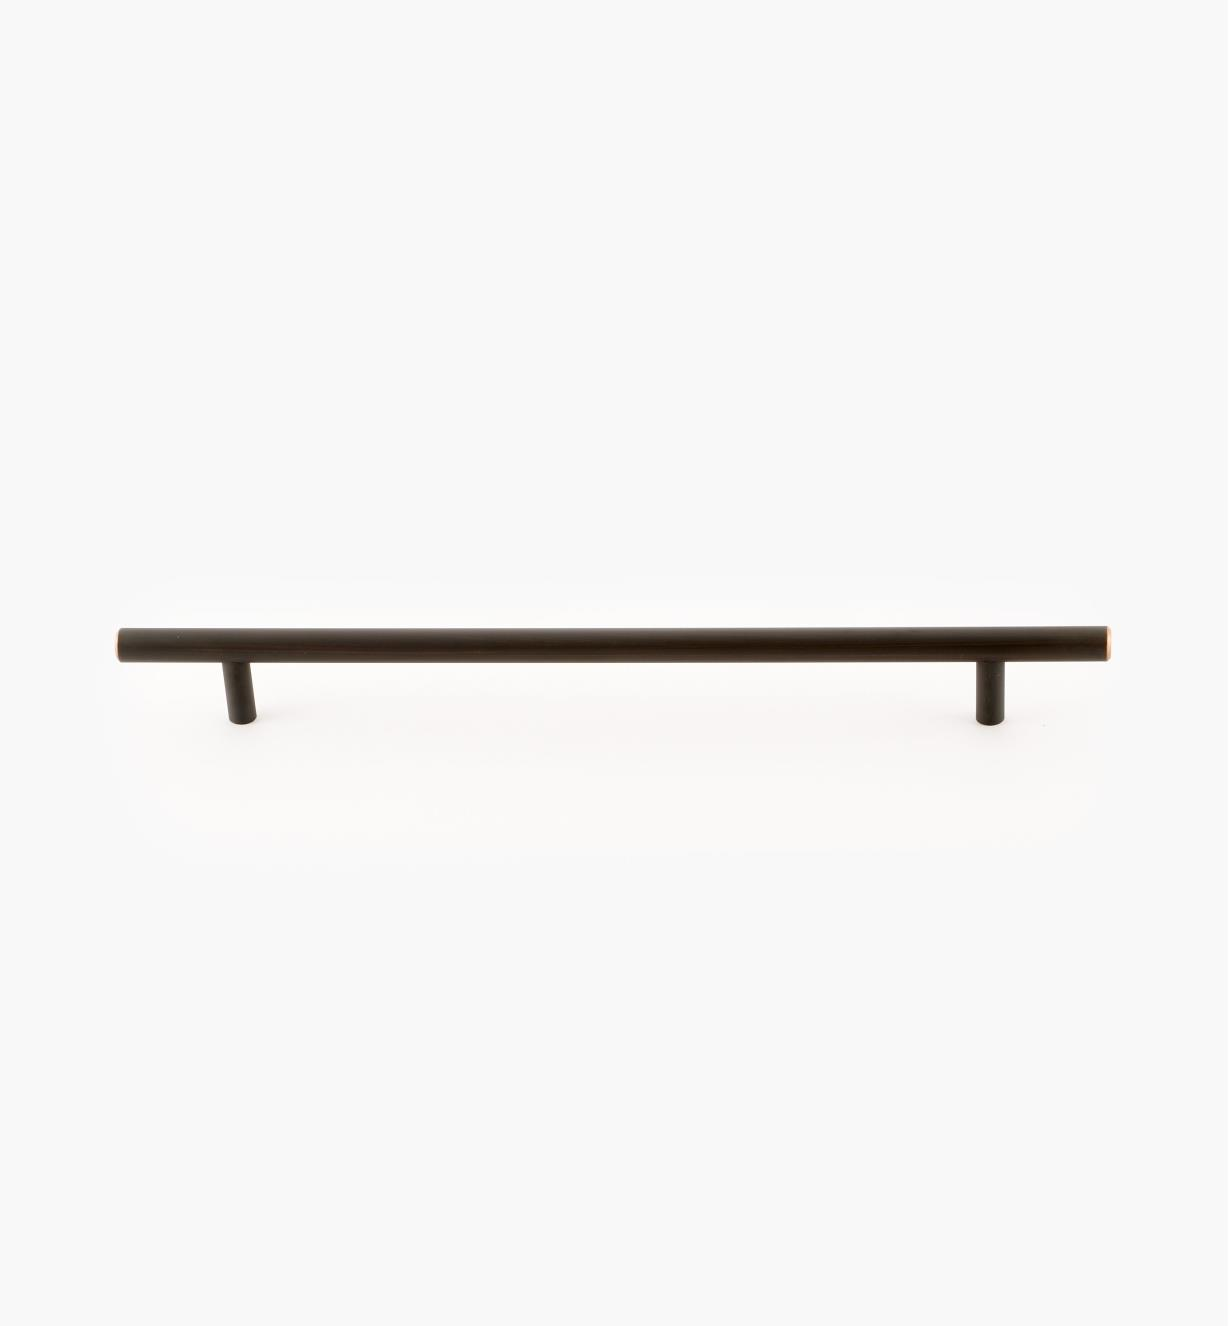 02A1489 - Bar Oil-Rubbed Bronze 256mm (337mm) Pull, each